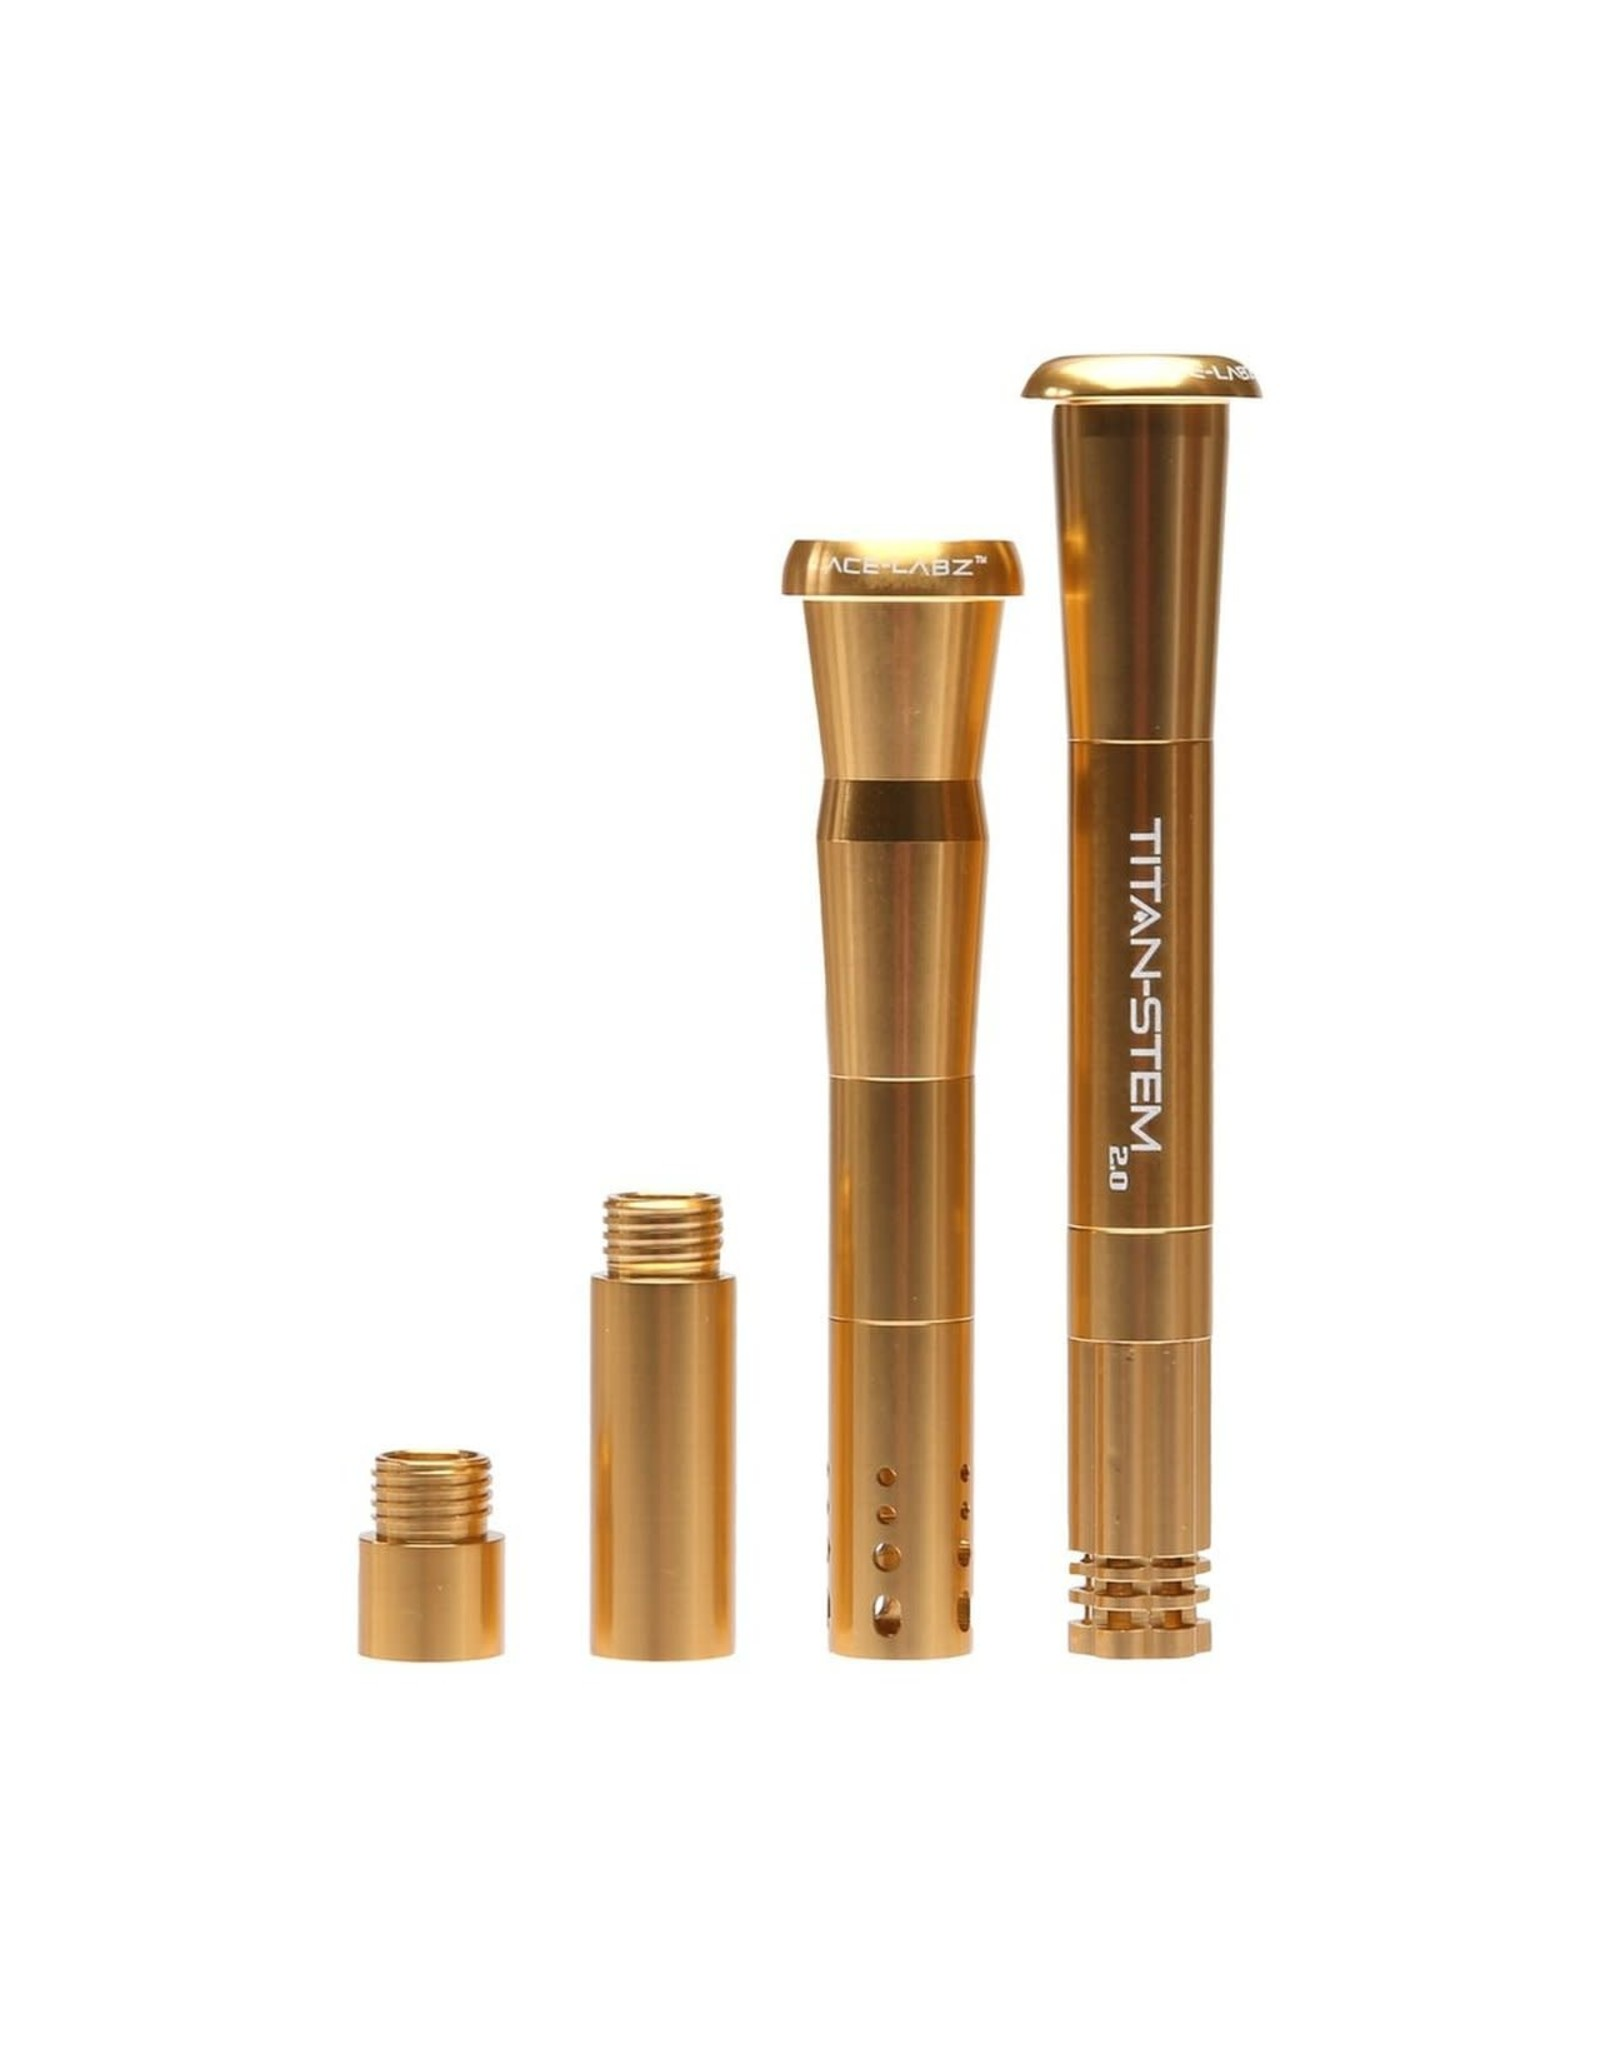 ace-labz Titan-Stem 3.0 Aluminum Metal Adjustable Length Downstem Gold